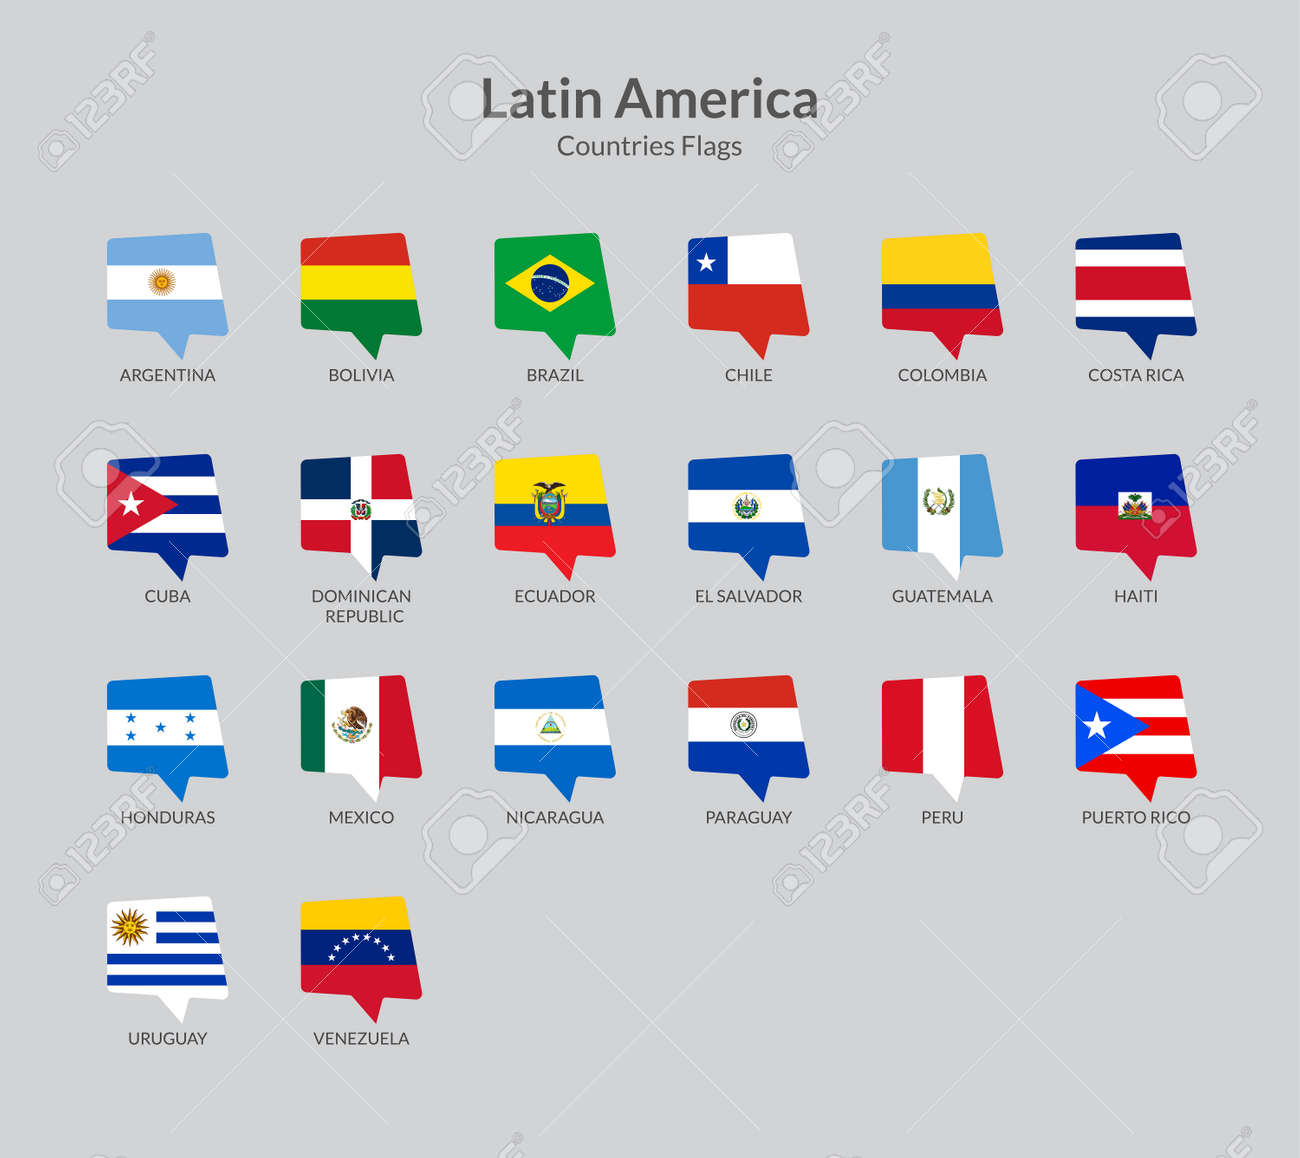 Latin American Countries Flag Icons Collection Royalty Free Cliparts Vectors And Stock Illustration Image 143383109